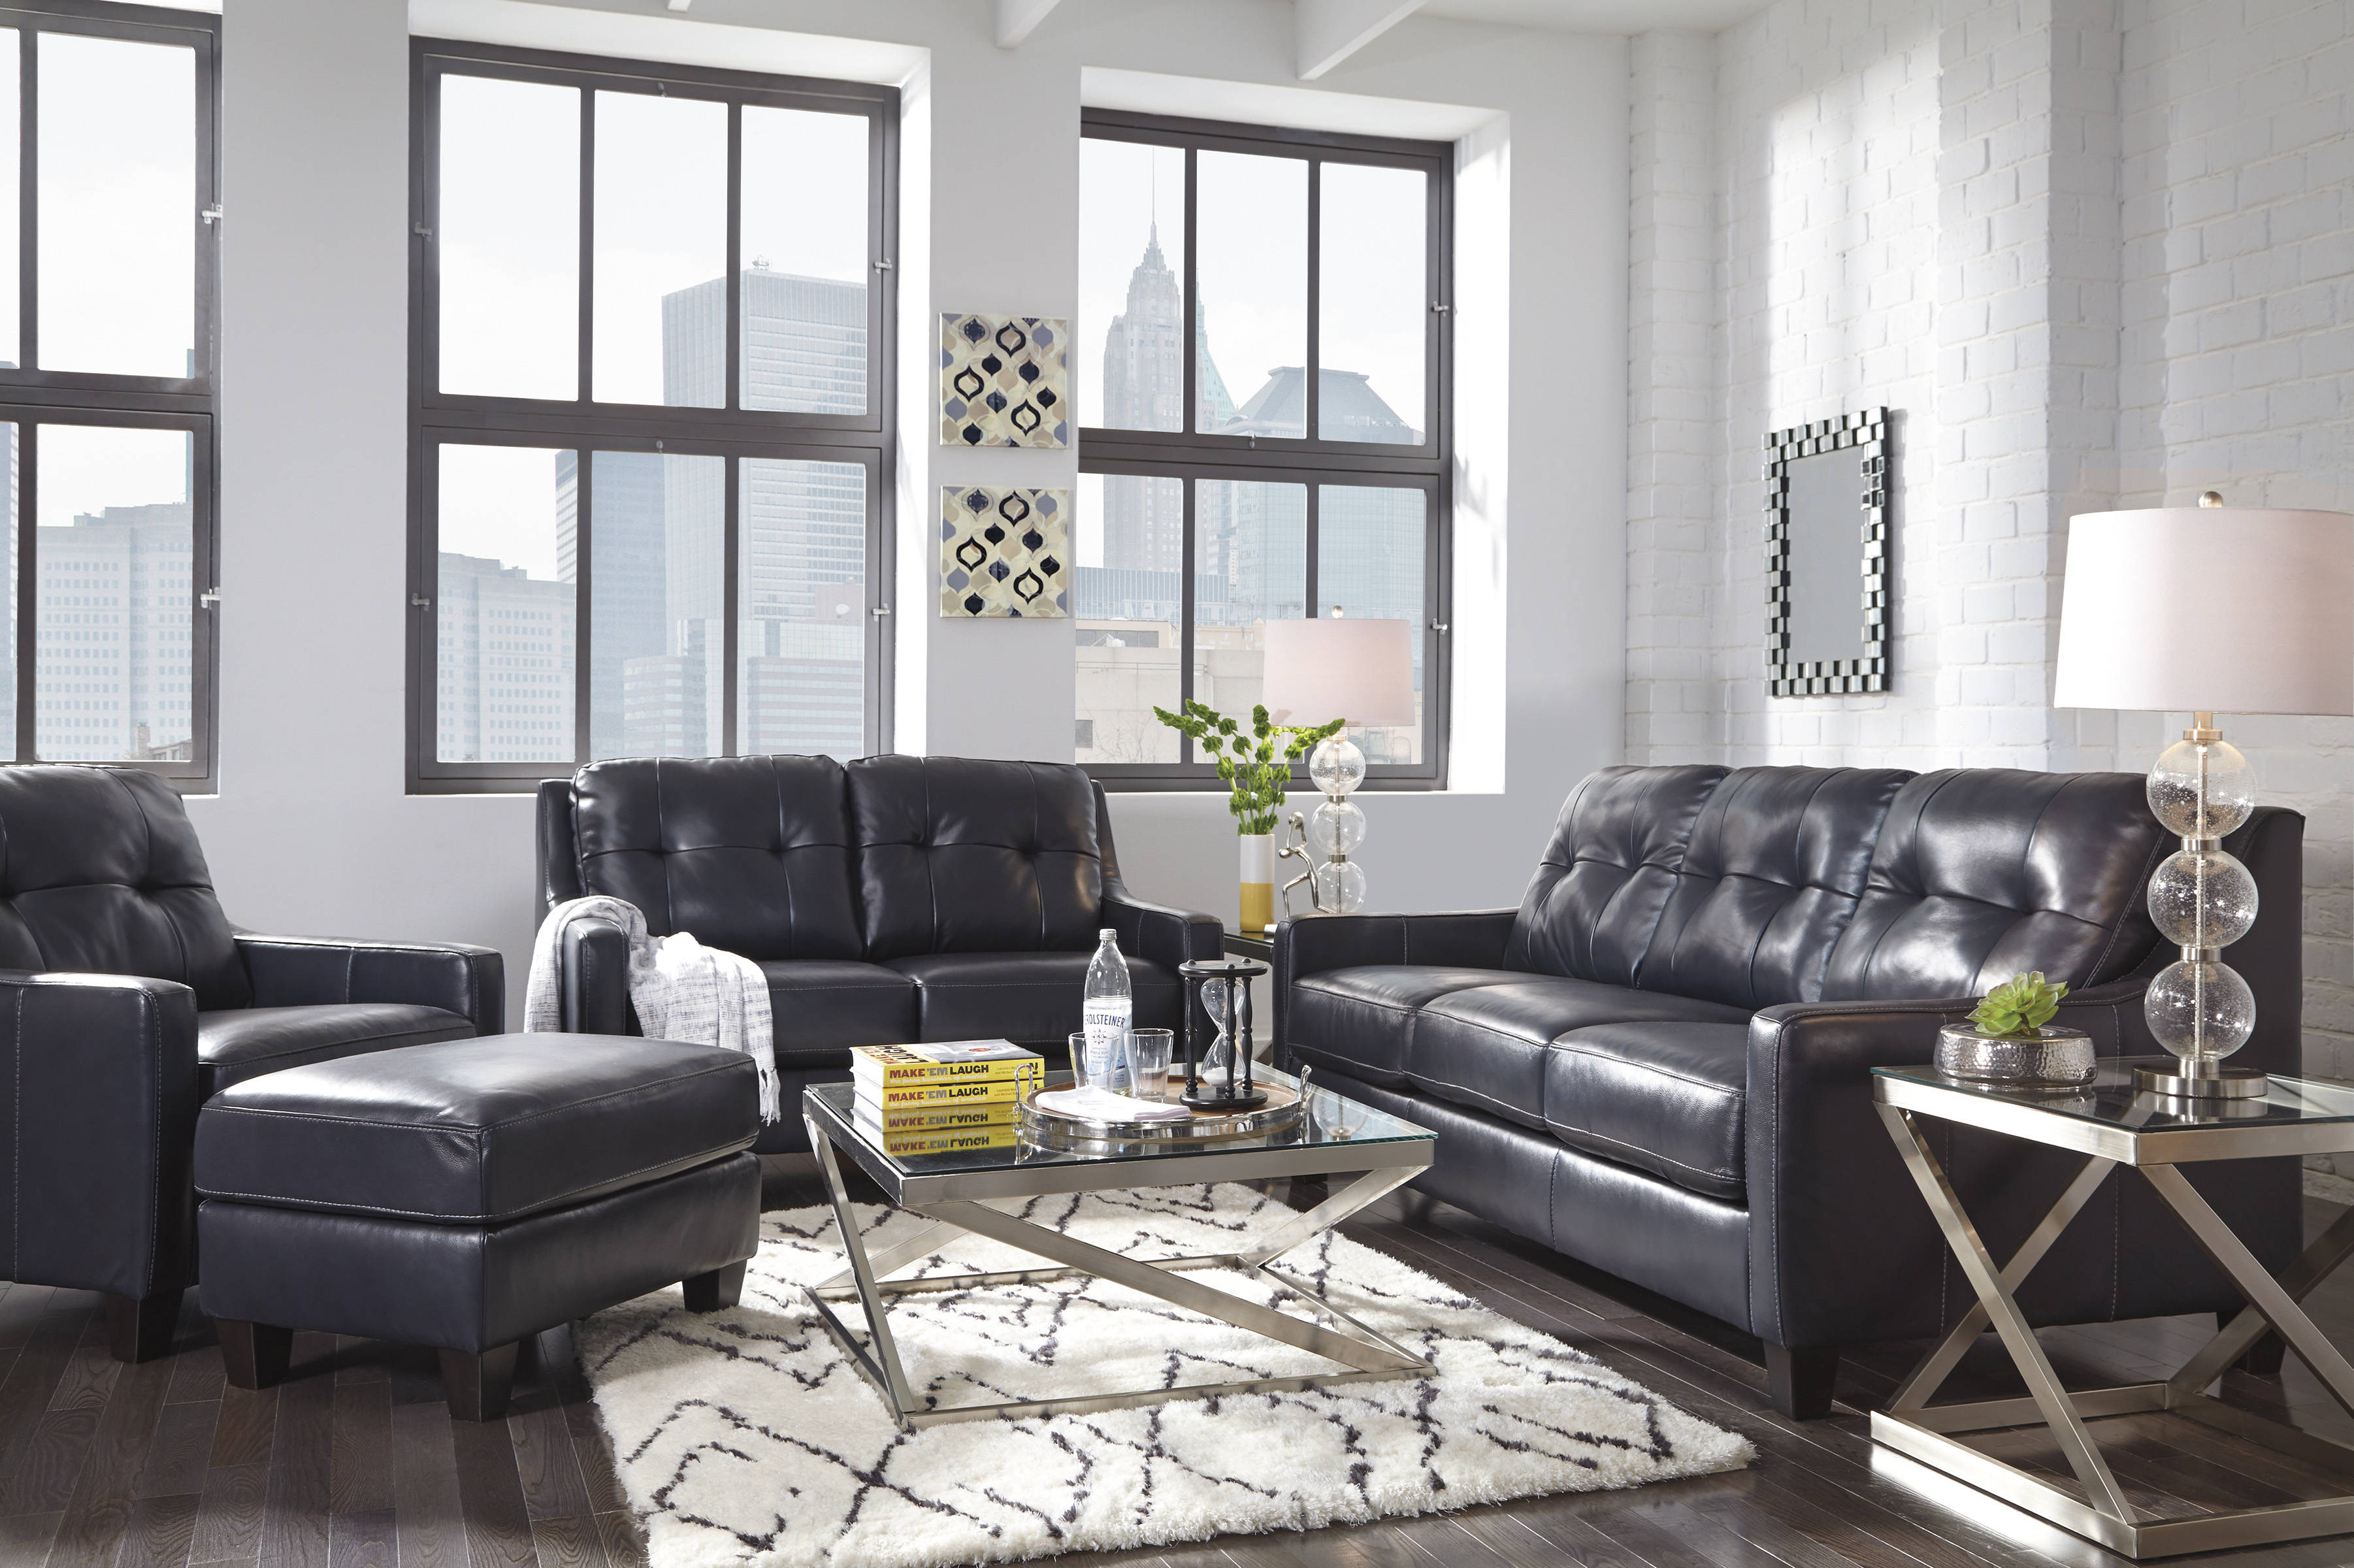 ashley furniture okean navy 3pc living room set the classy home rh theclassyhome com